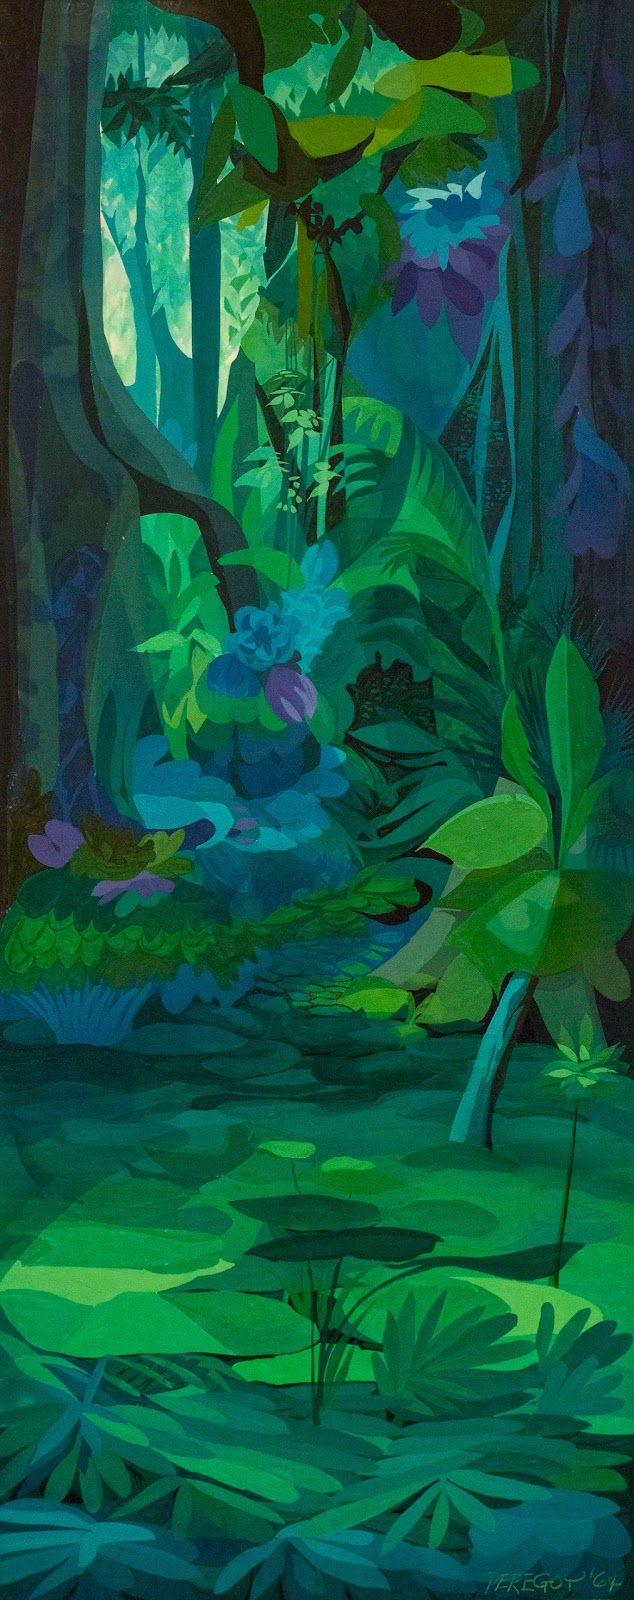 Walt Peregoy - Jungle Book concept art 1964